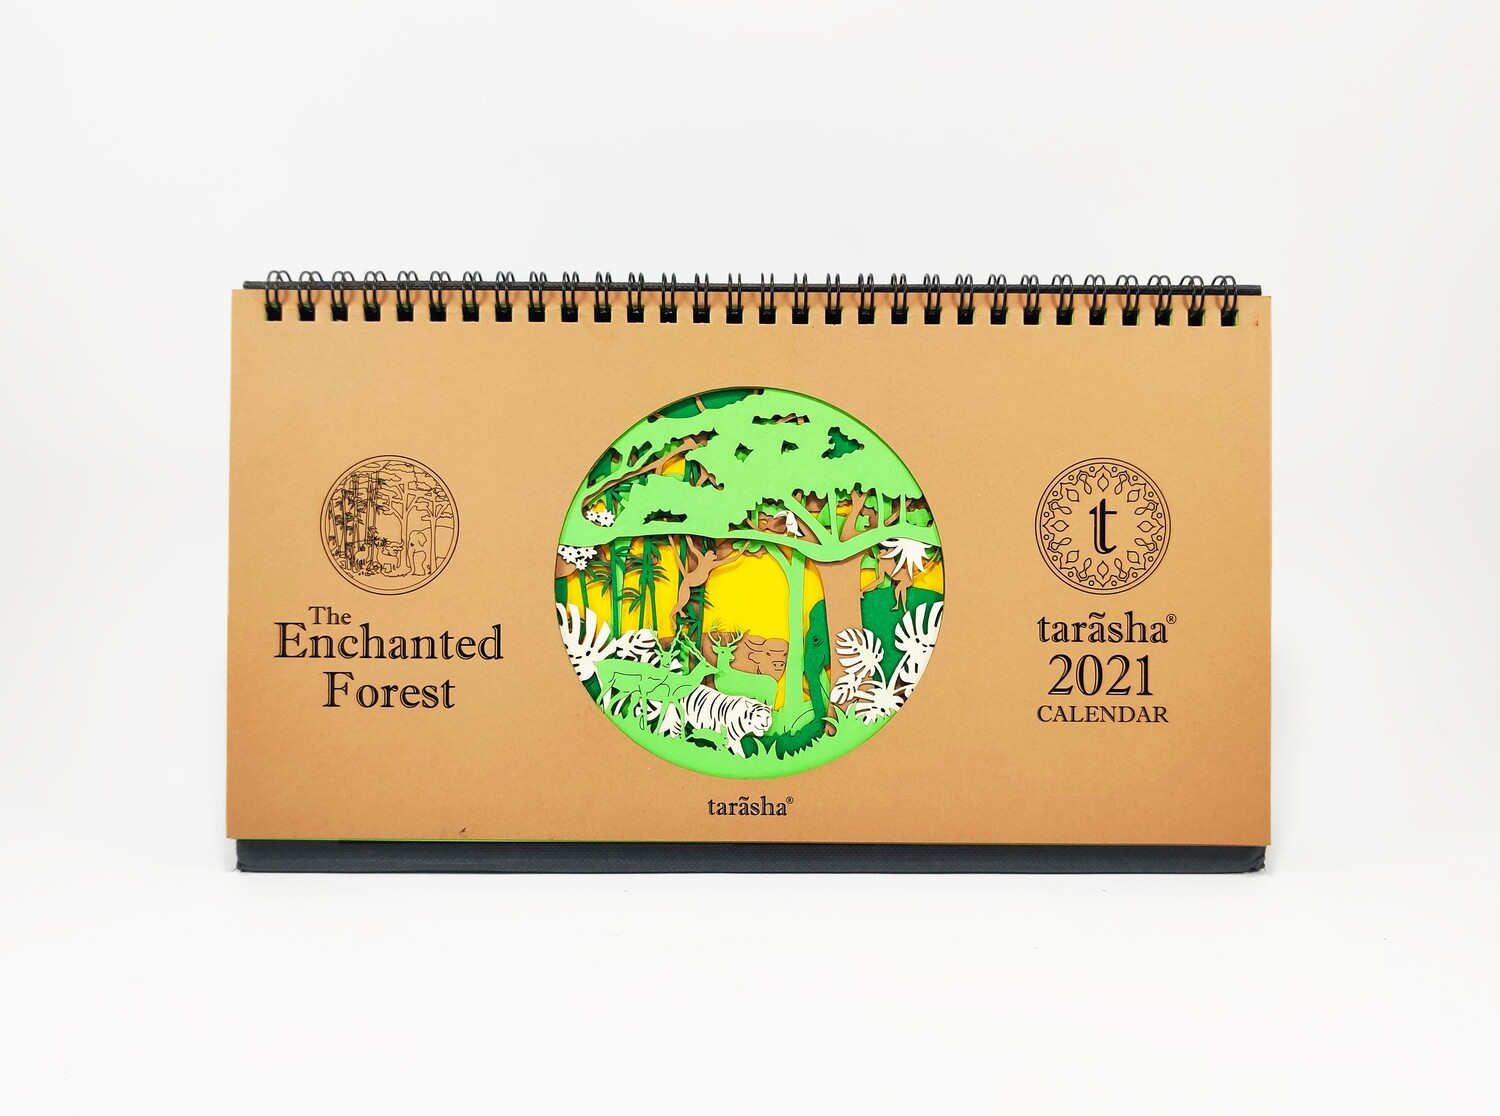 'The Enchanted Forest' Calendar 2021